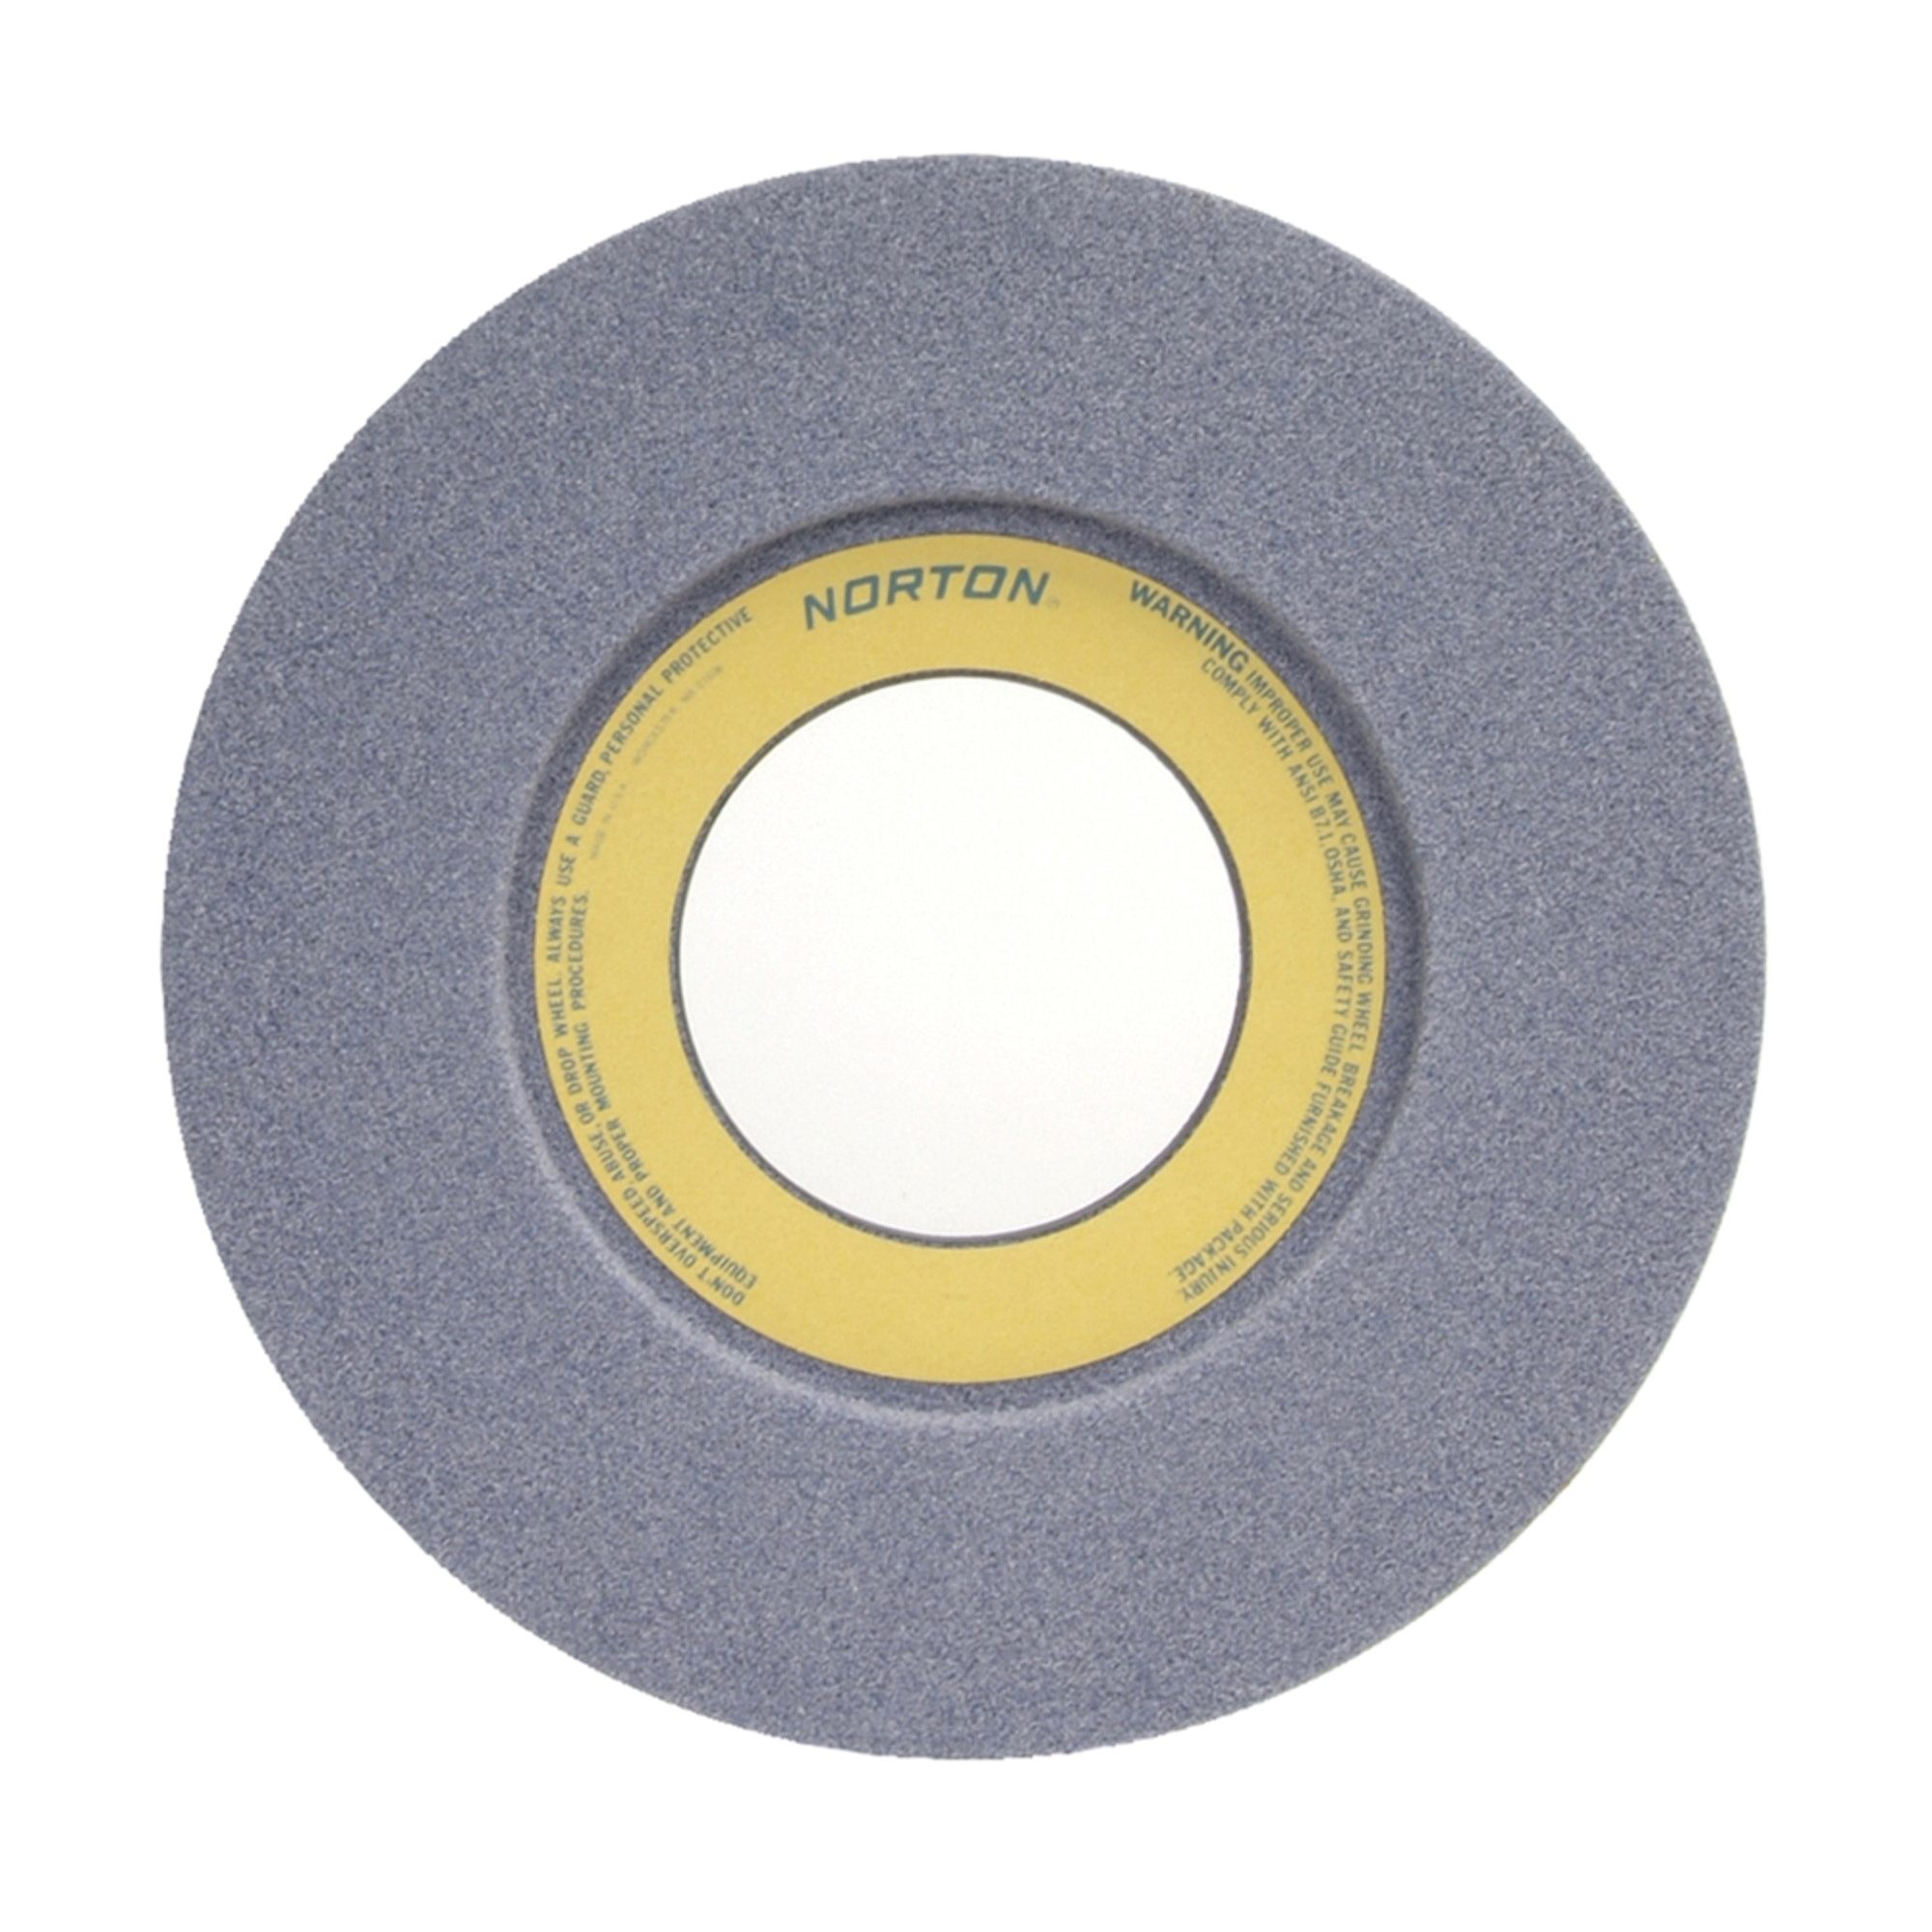 Norton® 66253263166 32A 1-Side Recessed Toolroom Wheel, 12 in Dia x 1-1/2 in THK, 5 in Center Hole, 46 Grit, Aluminum Oxide Abrasive